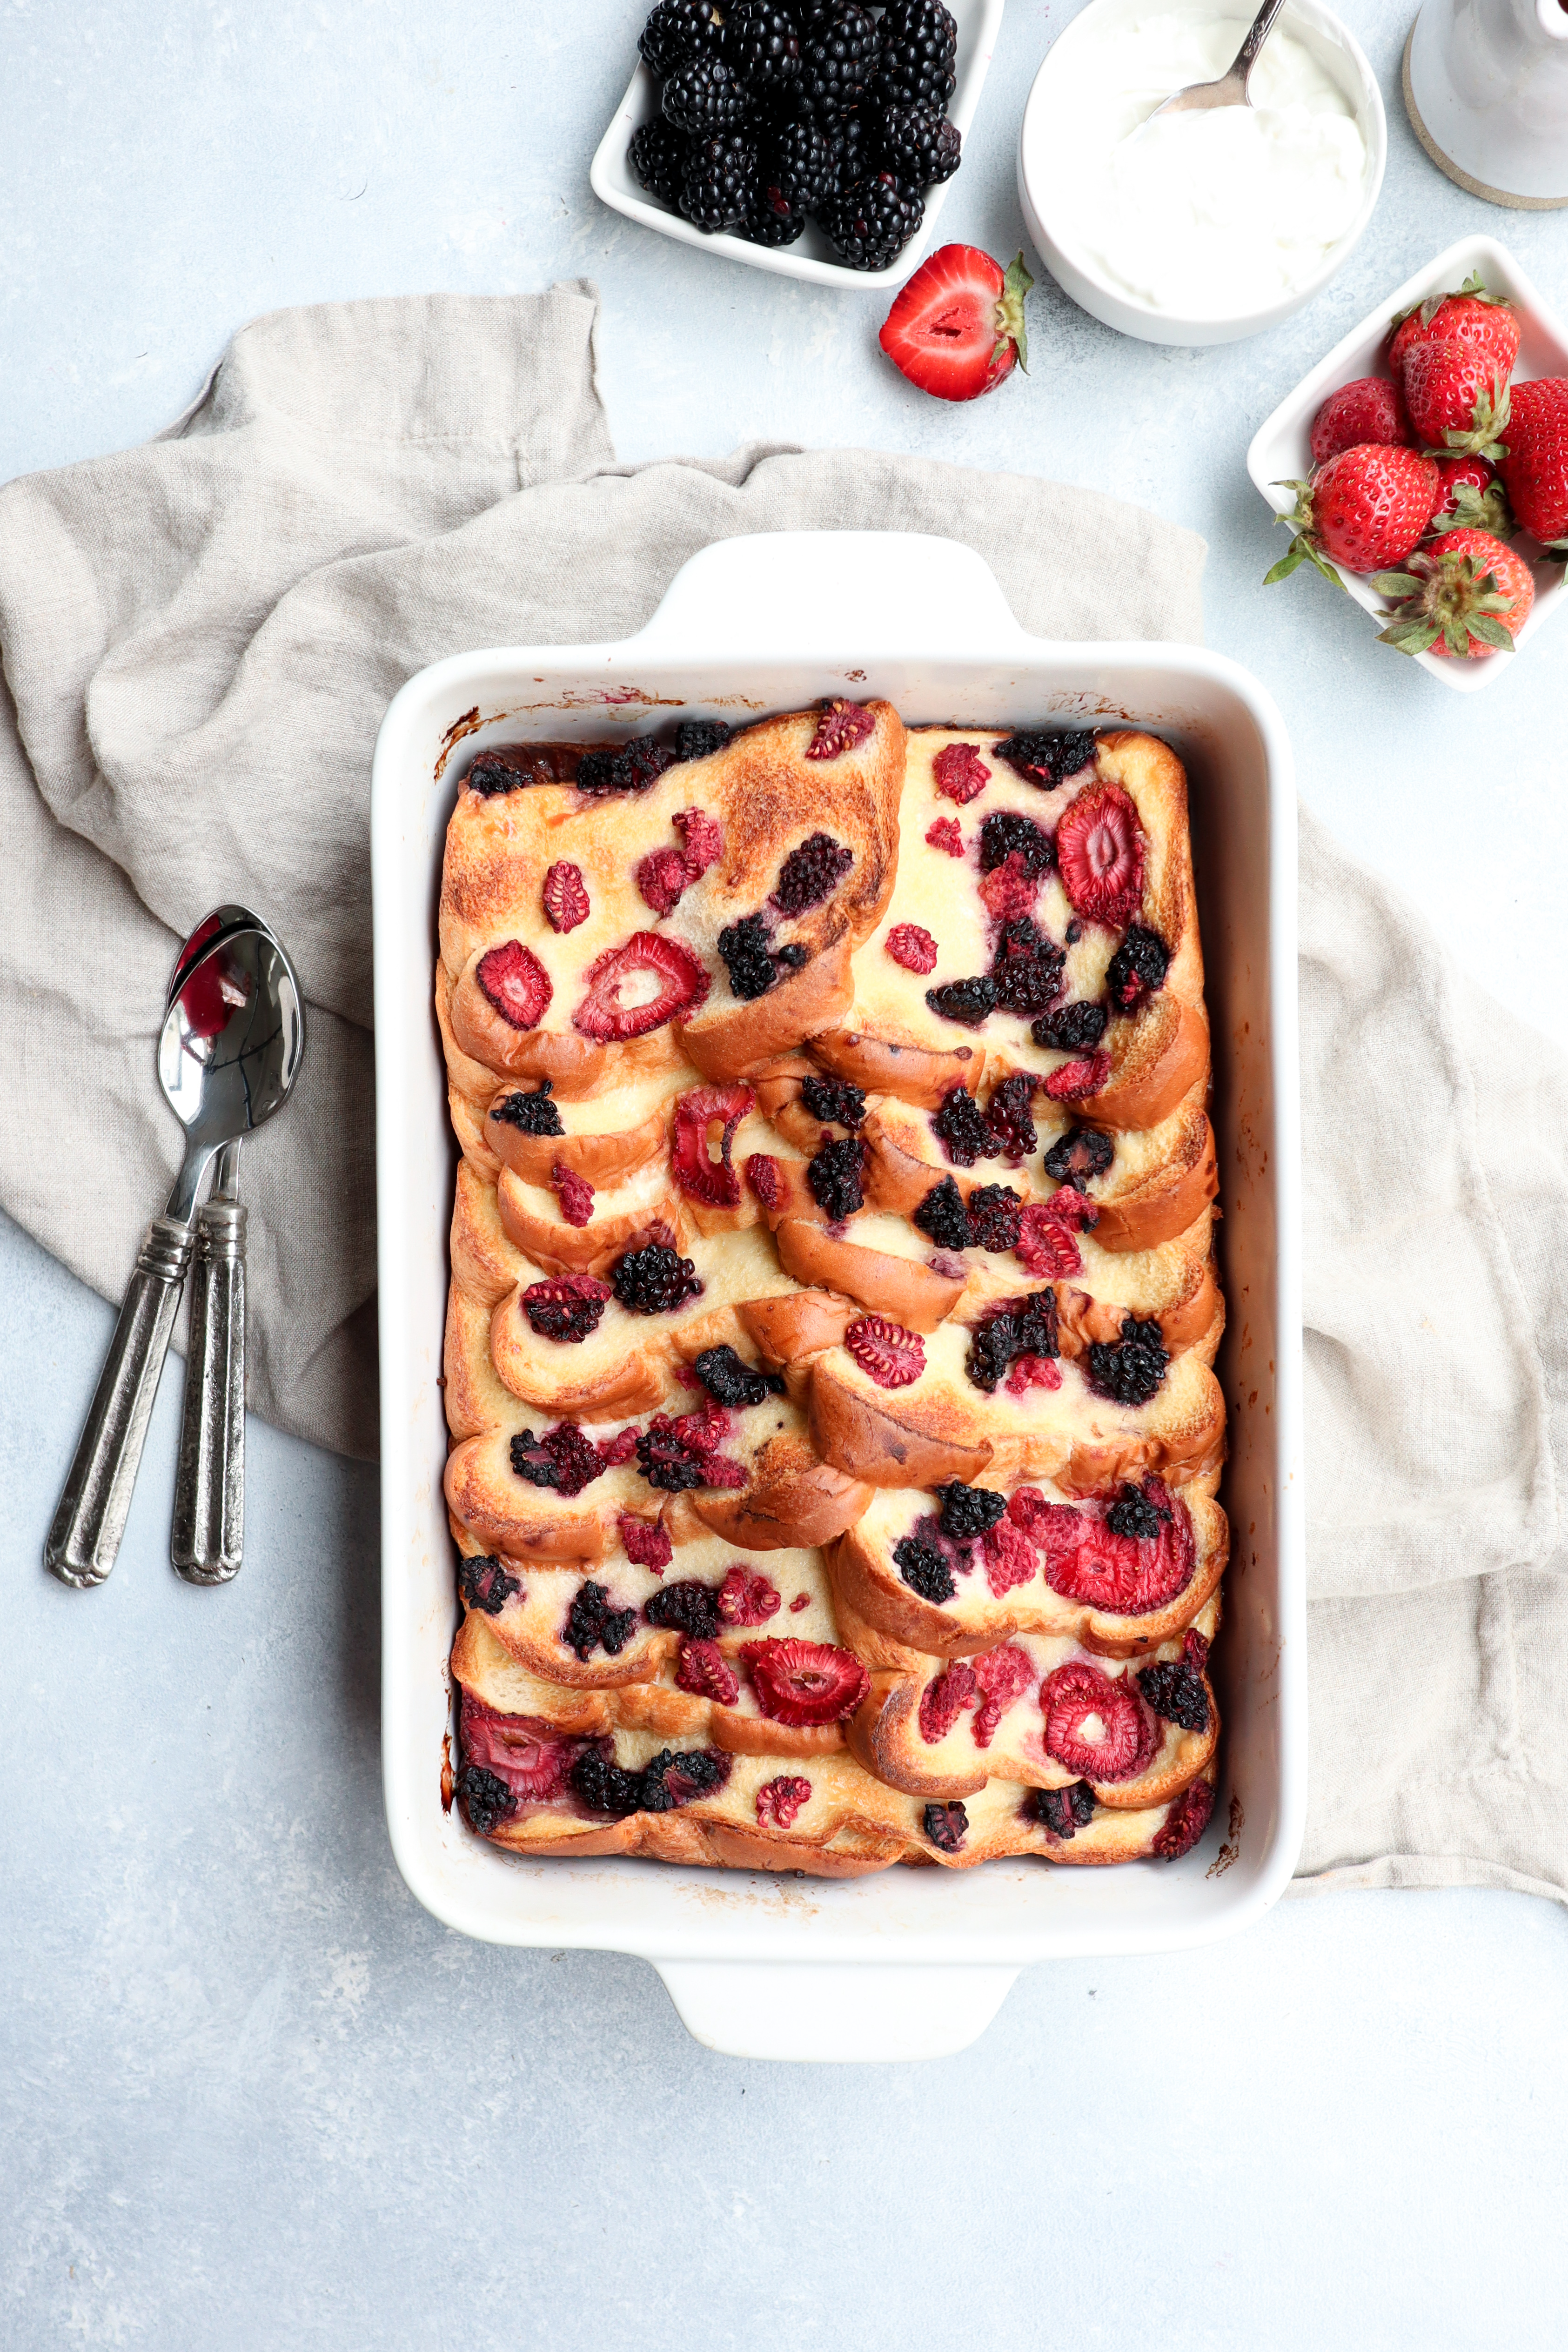 make-ahead baked yogurt & mixed berry french toast casserole // cait's plate